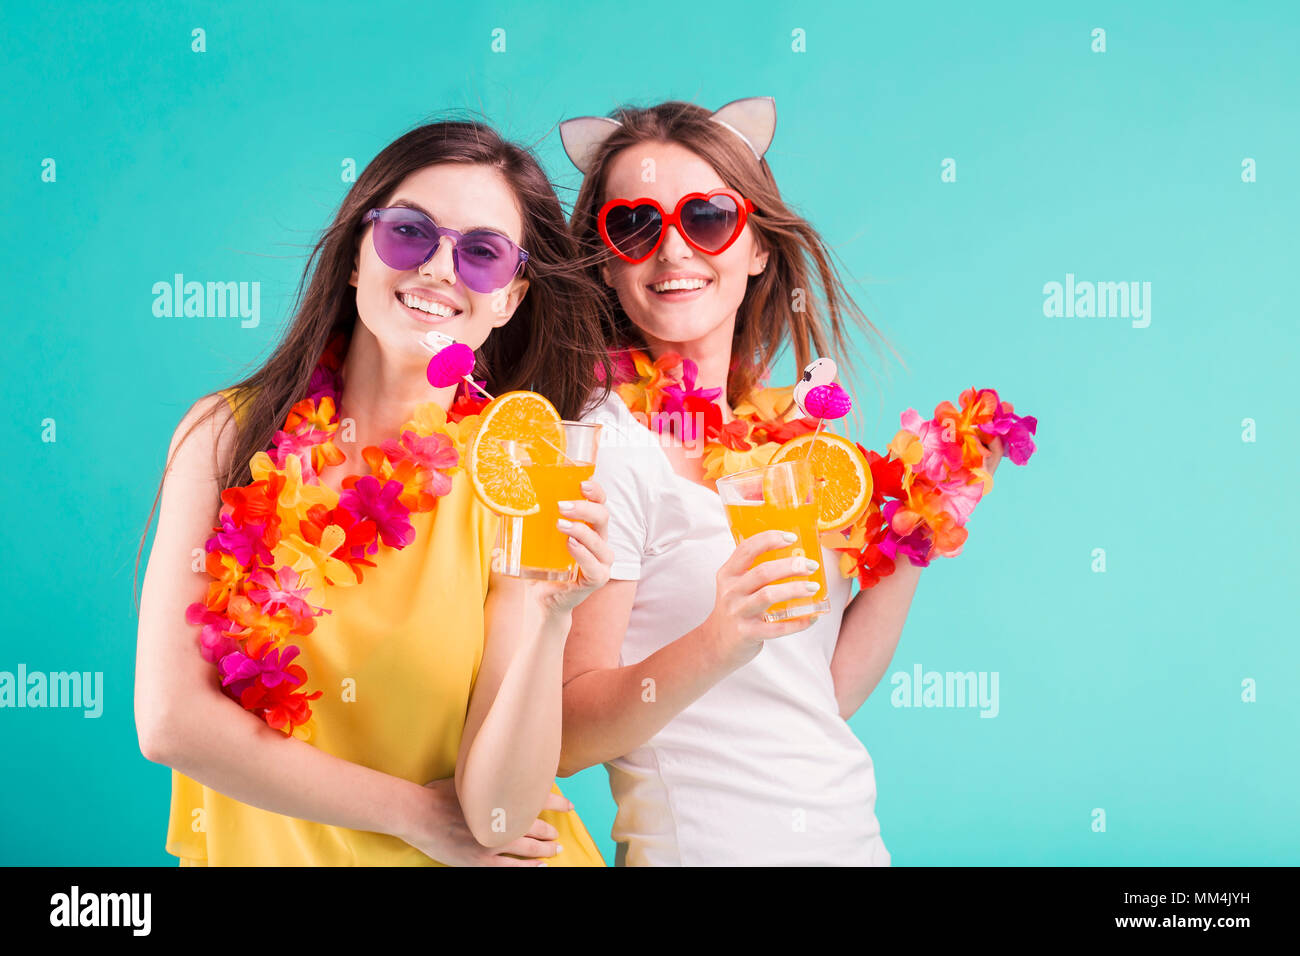 Two pretty smiling caucasian girls wears t-shirts with lei and sunglasses hold orange cocktails on blue background - Stock Image